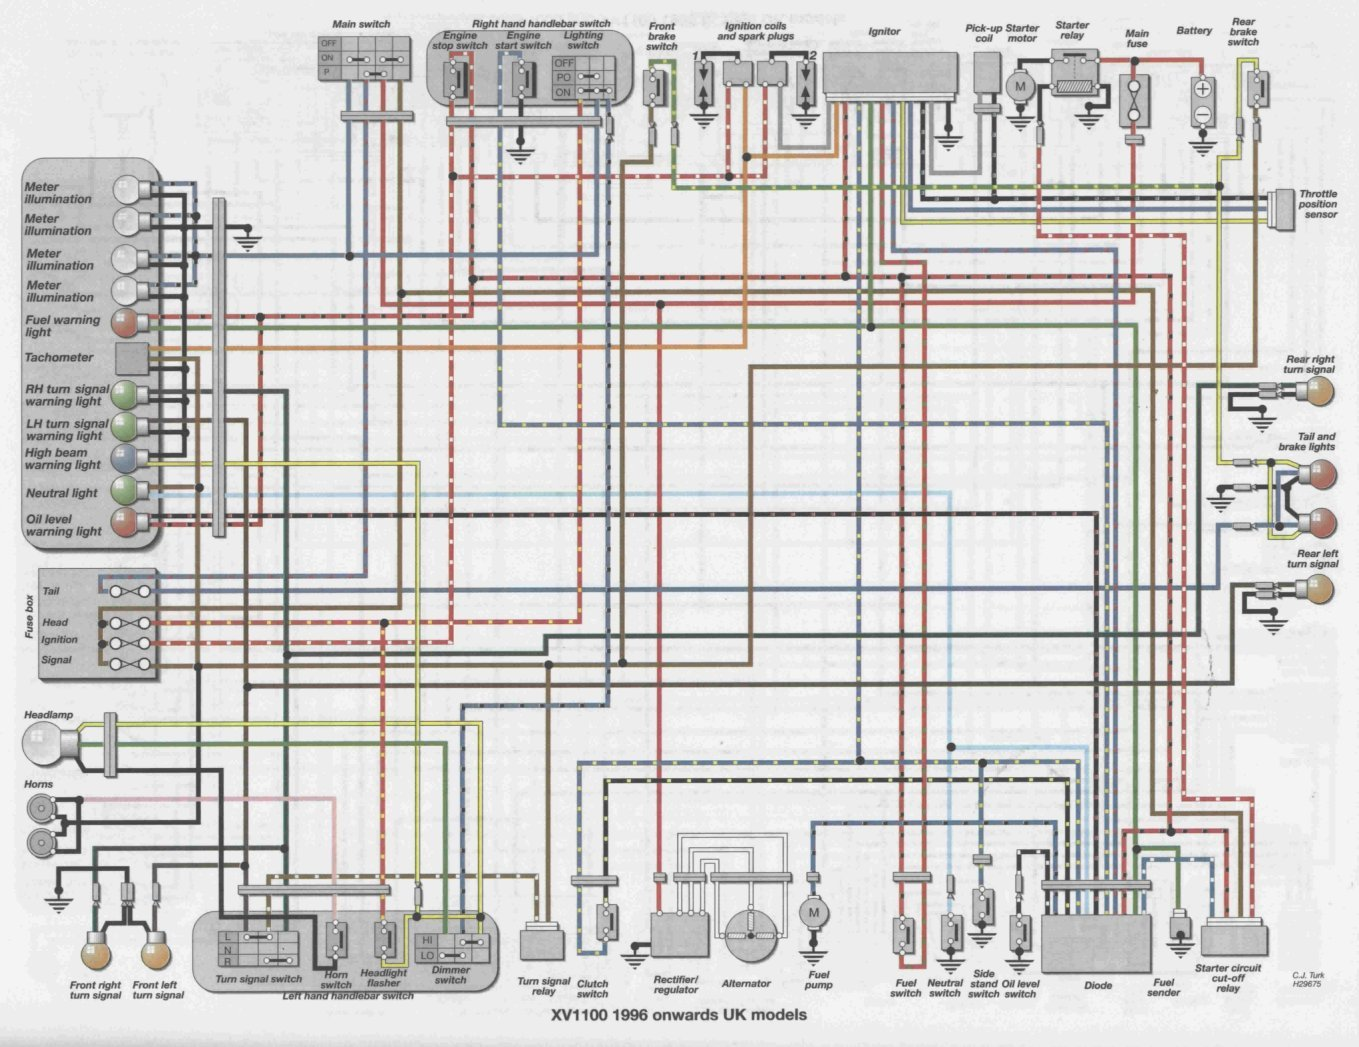 1993 yamaha xv535 wiring schematic - wiring diagram schematic deep-make-a -  deep-make-a.aliceviola.it  aliceviola.it